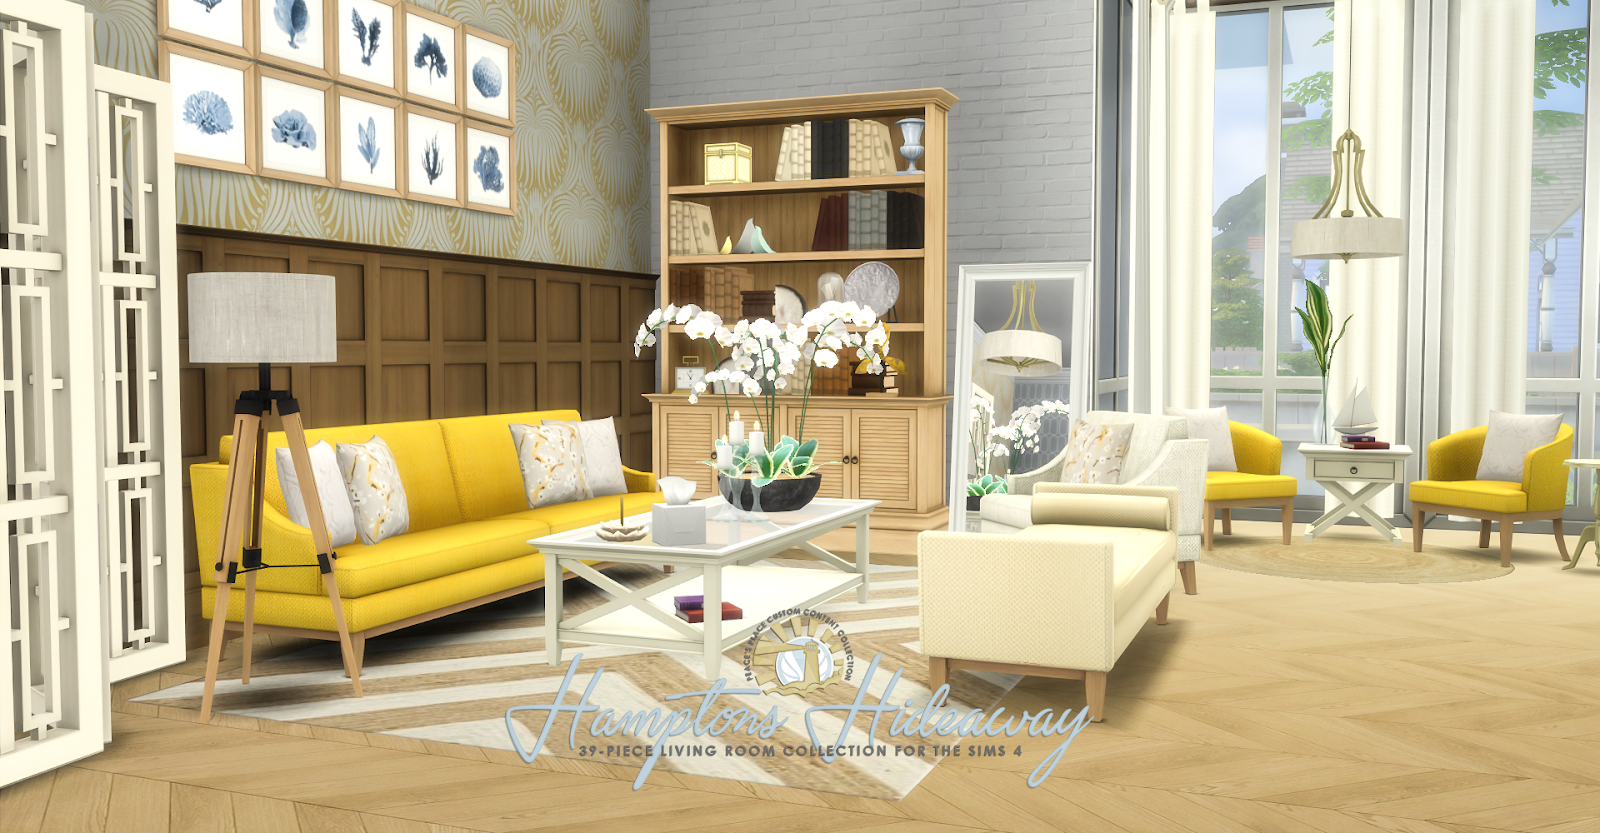 Simsational designs hamptons hideaway living room set for Rooms 4 kids